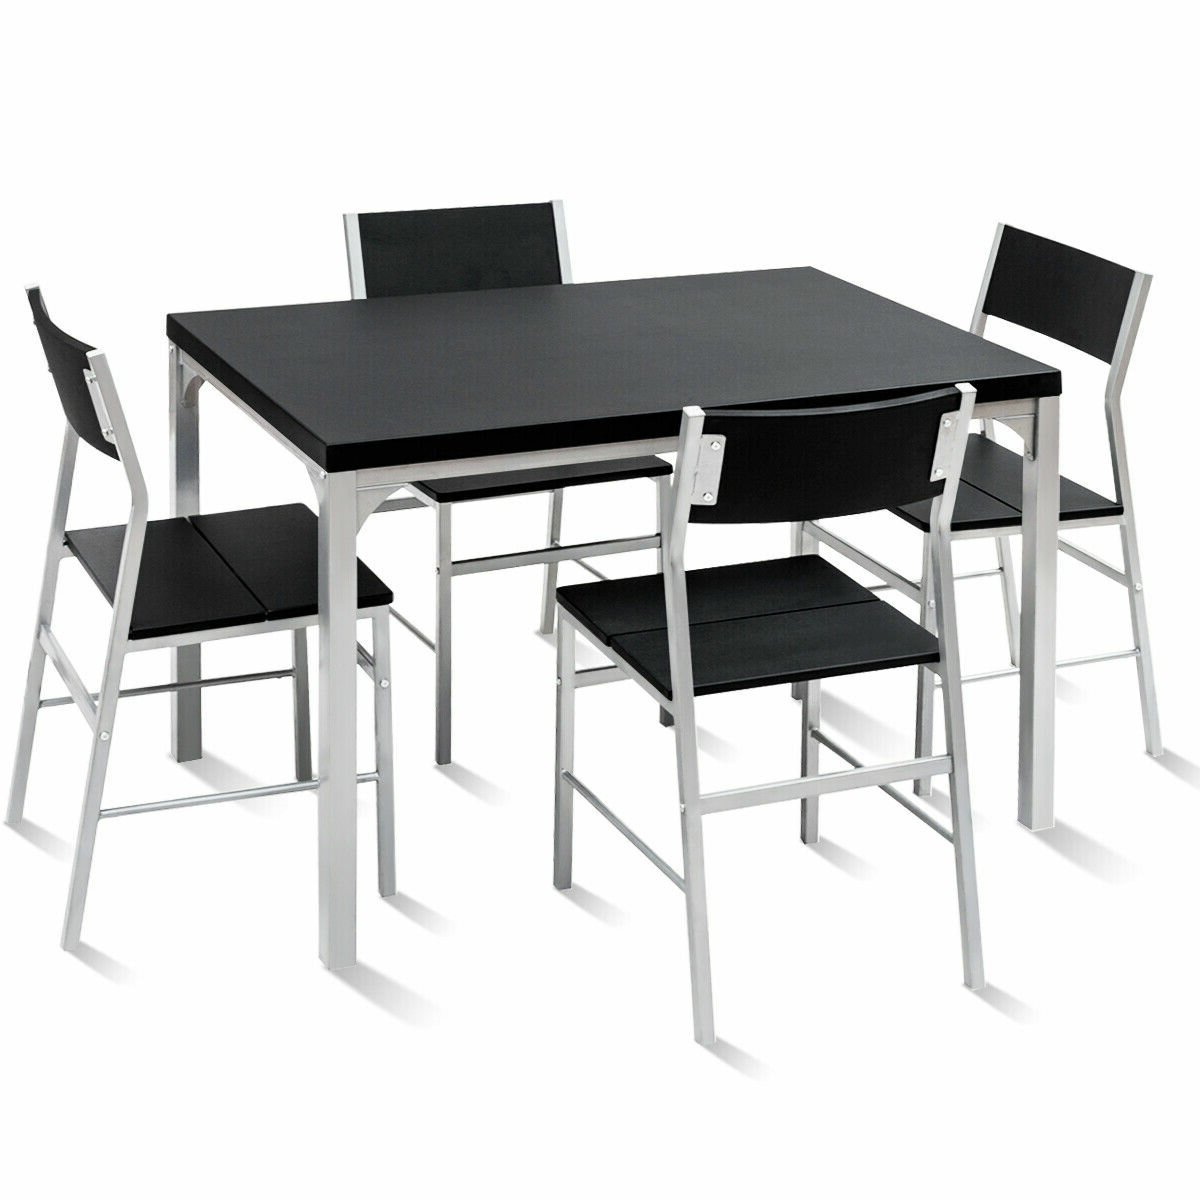 Preferred Catalina 5 Piece Dining Set In Mulvey 5 Piece Dining Sets (View 19 of 20)